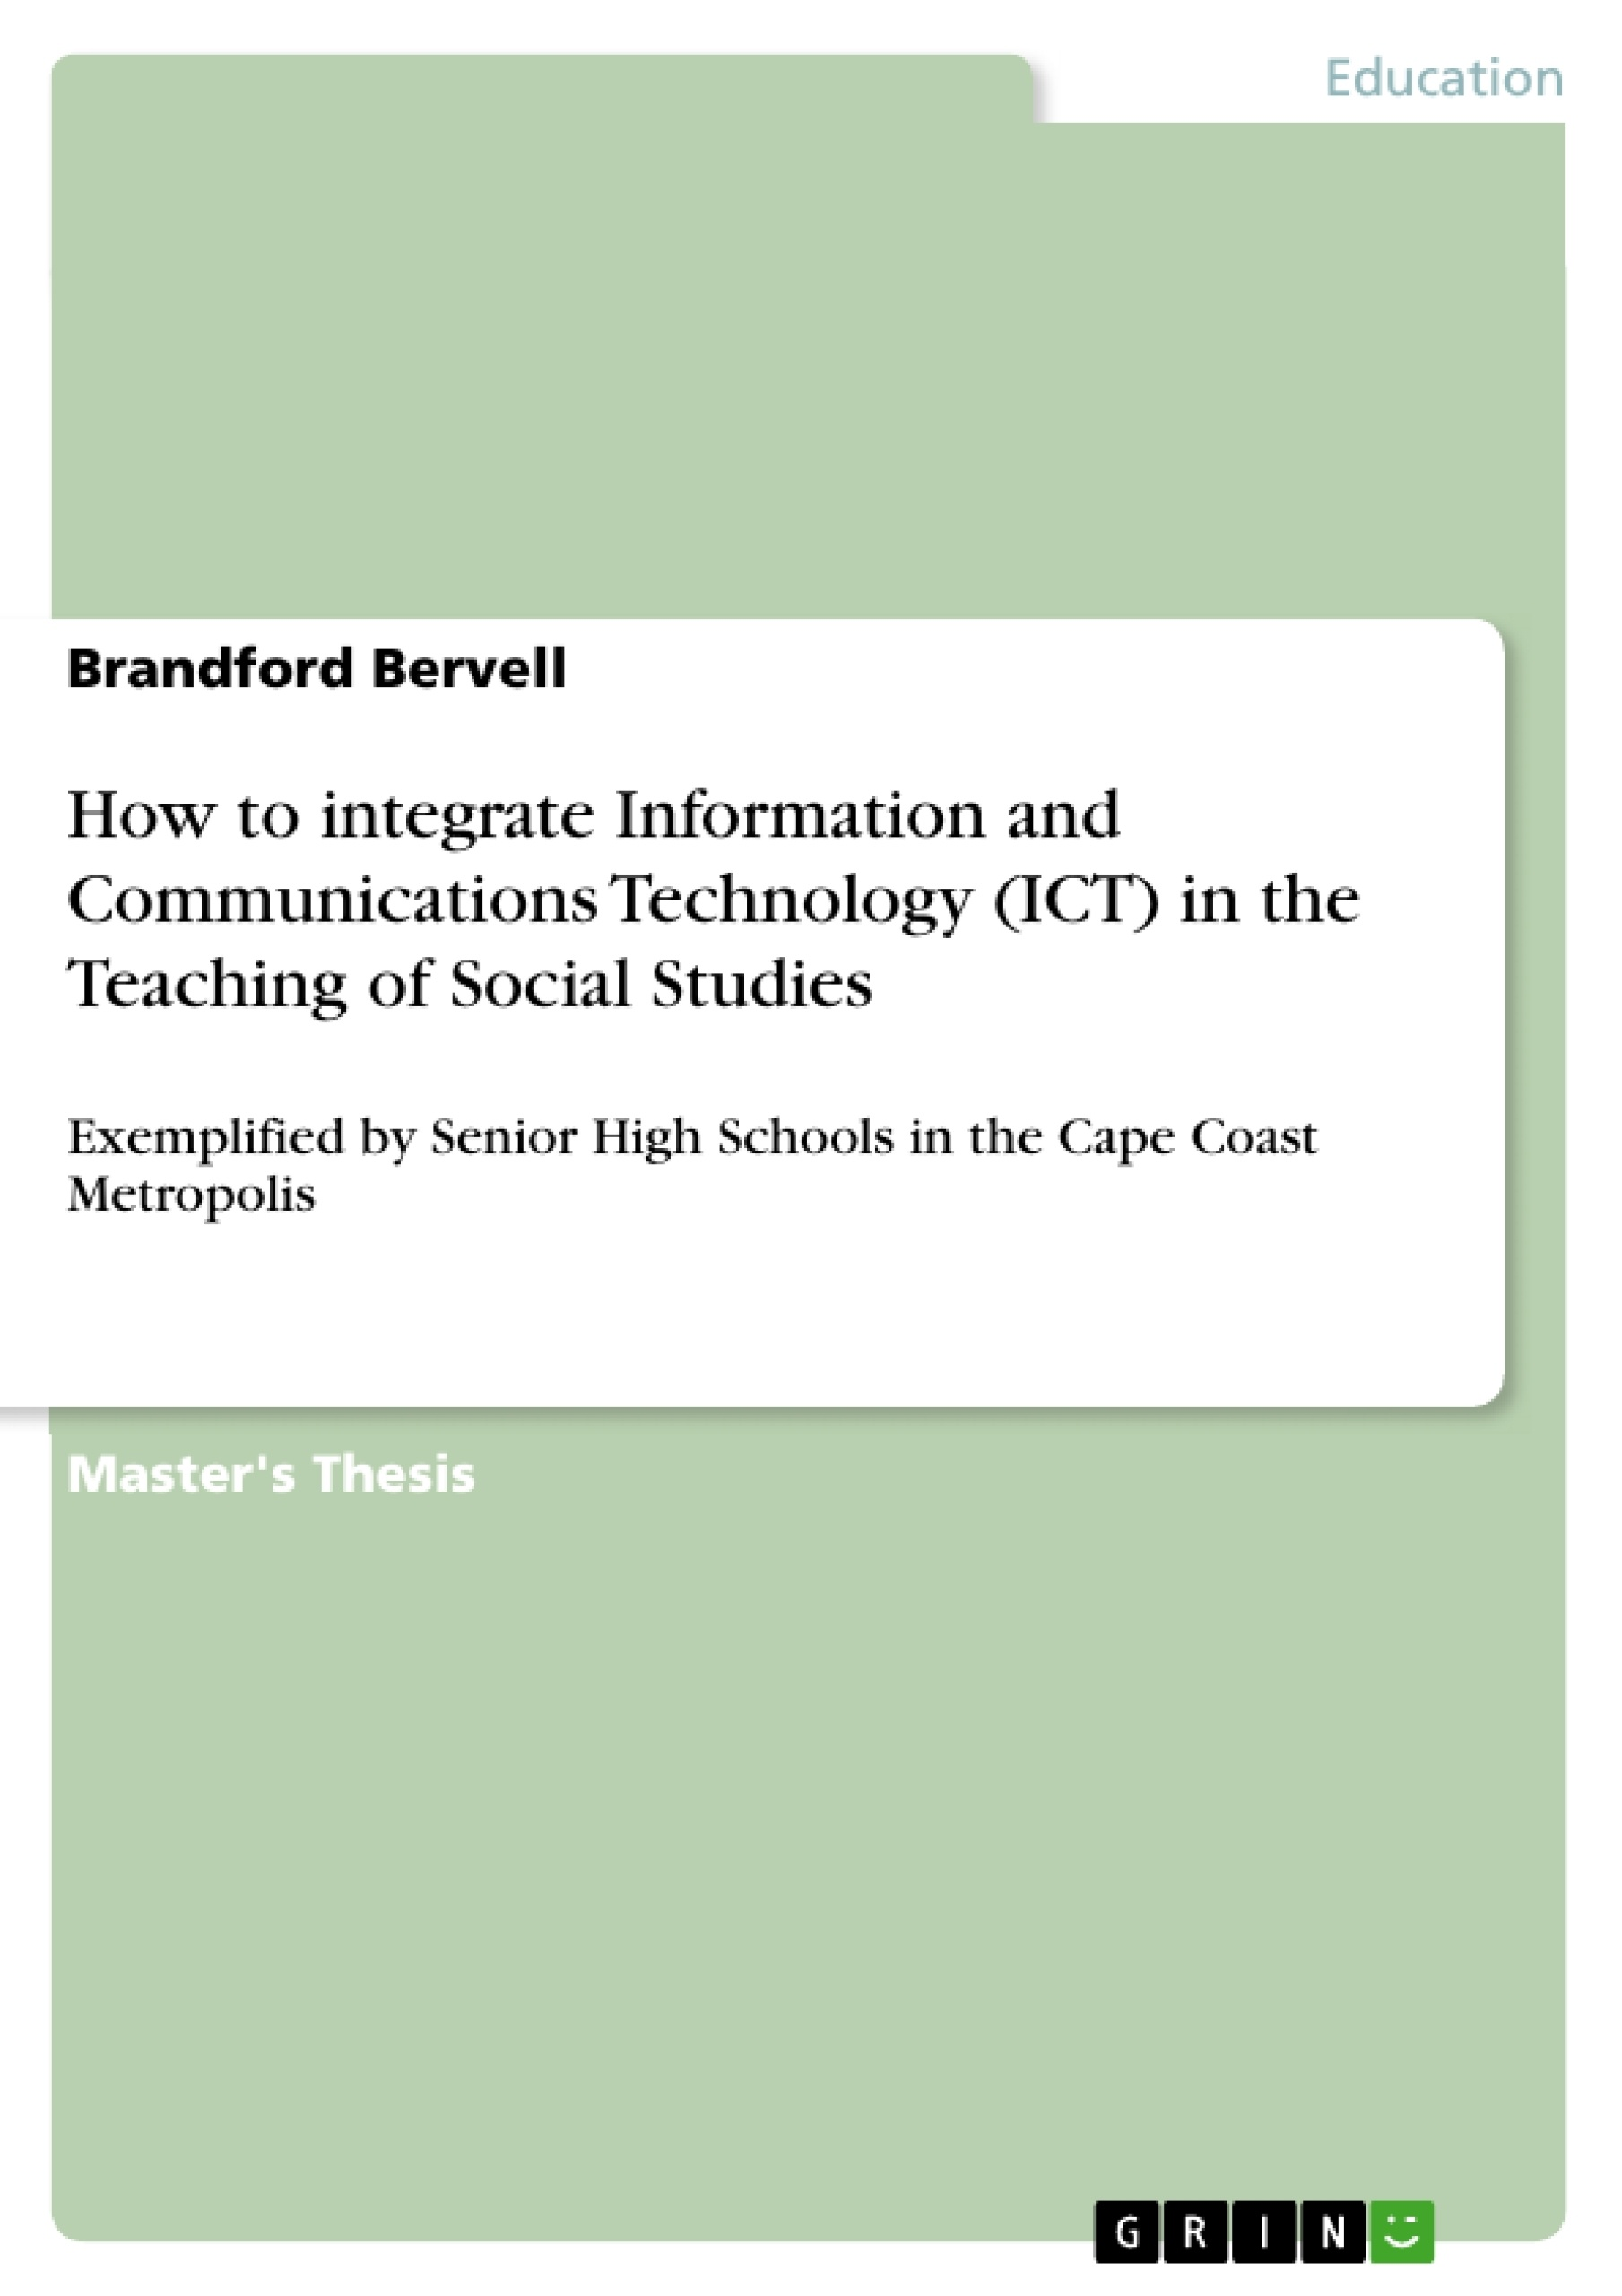 Title: How to integrate Information and Communications Technology (ICT) in the Teaching of Social Studies